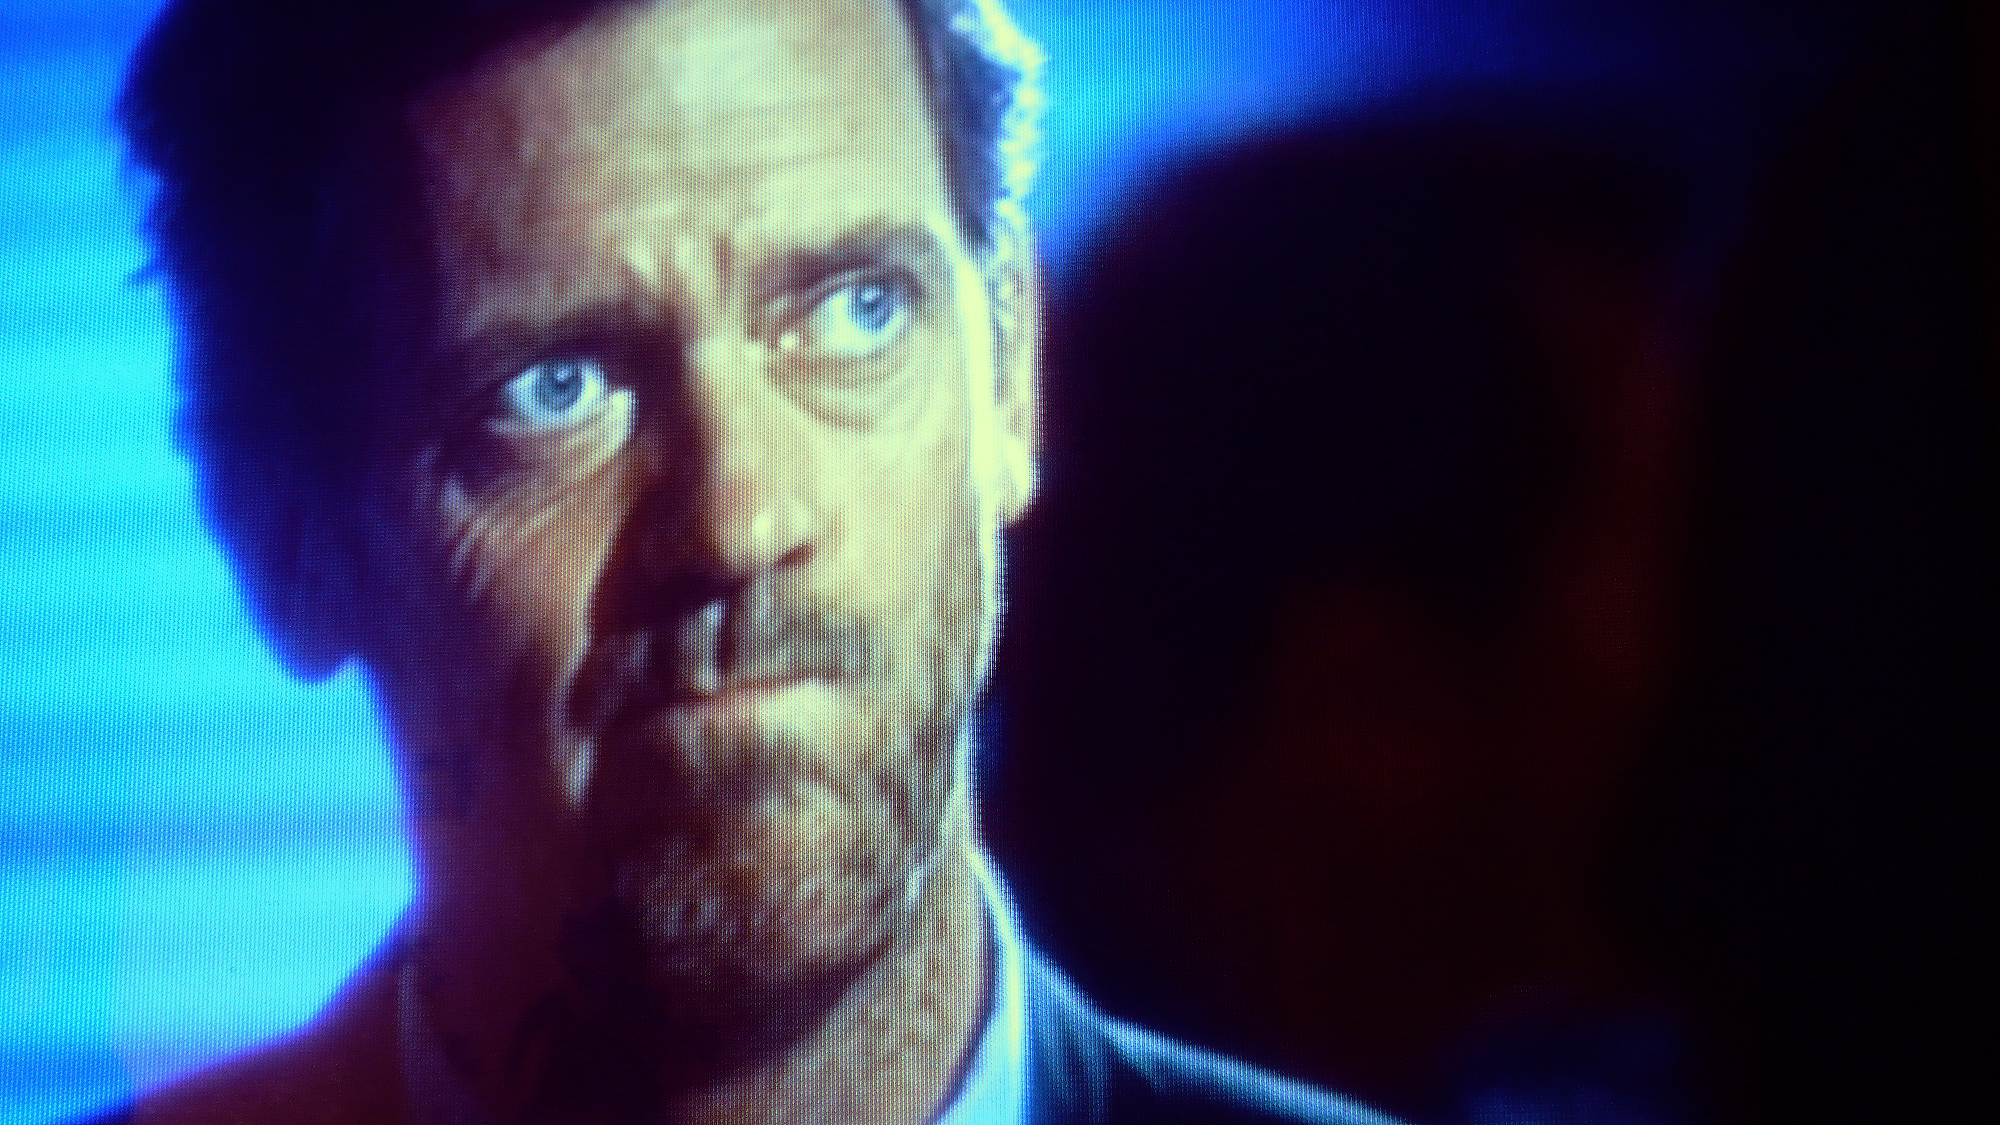 dr house face meme. the difficulty in diagnosing lupus lends itself to treatment it receives on tv show house eeb d oflickr dr face meme